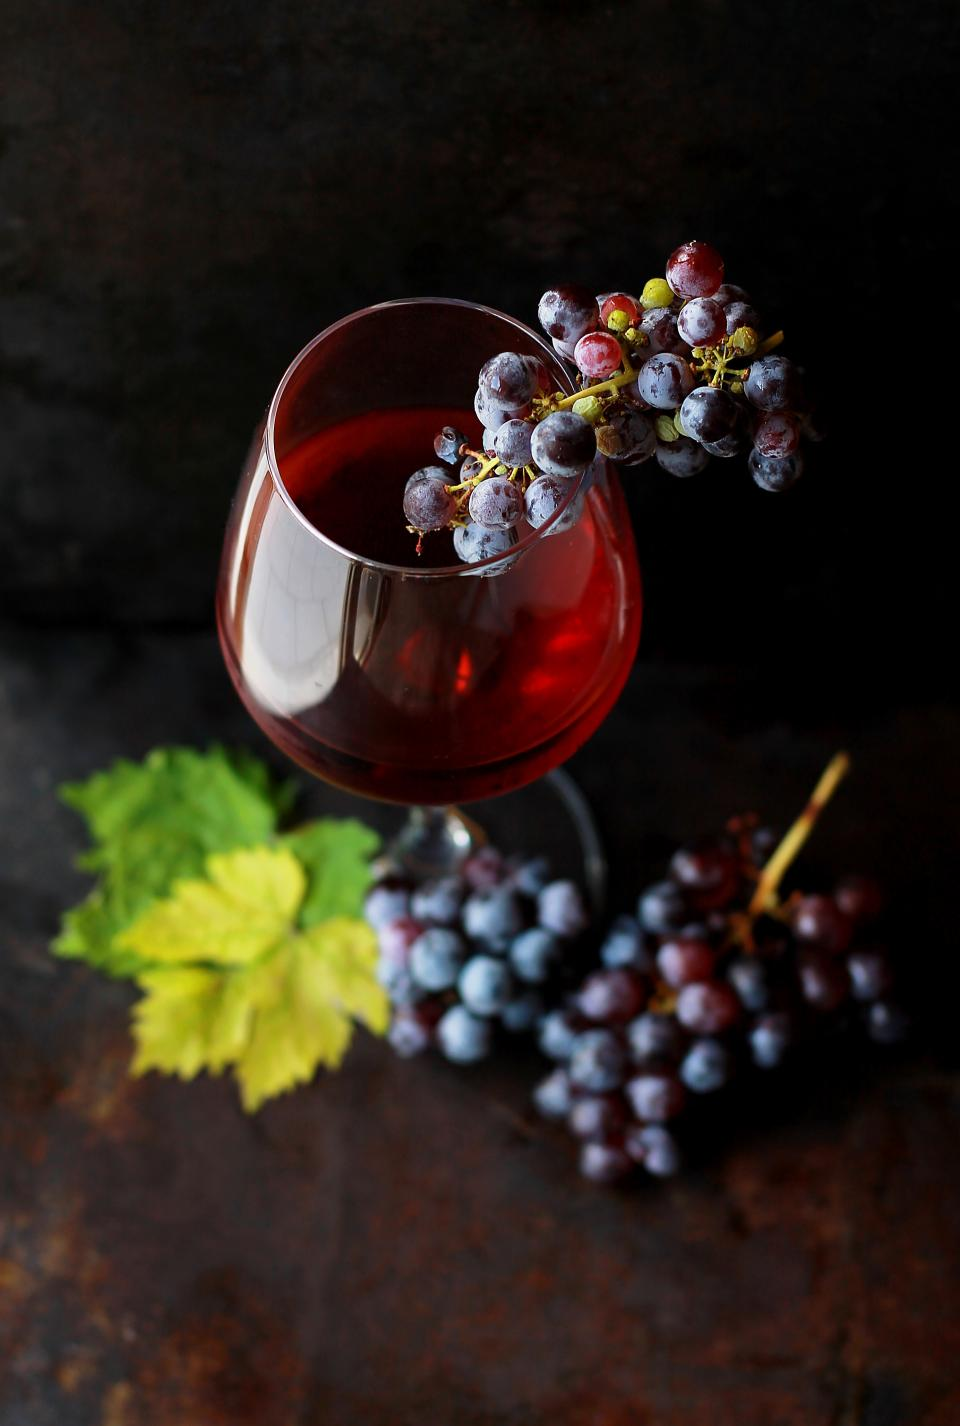 food fruit grapes wine alcohol glass eat drink dessert leaves presentation blur